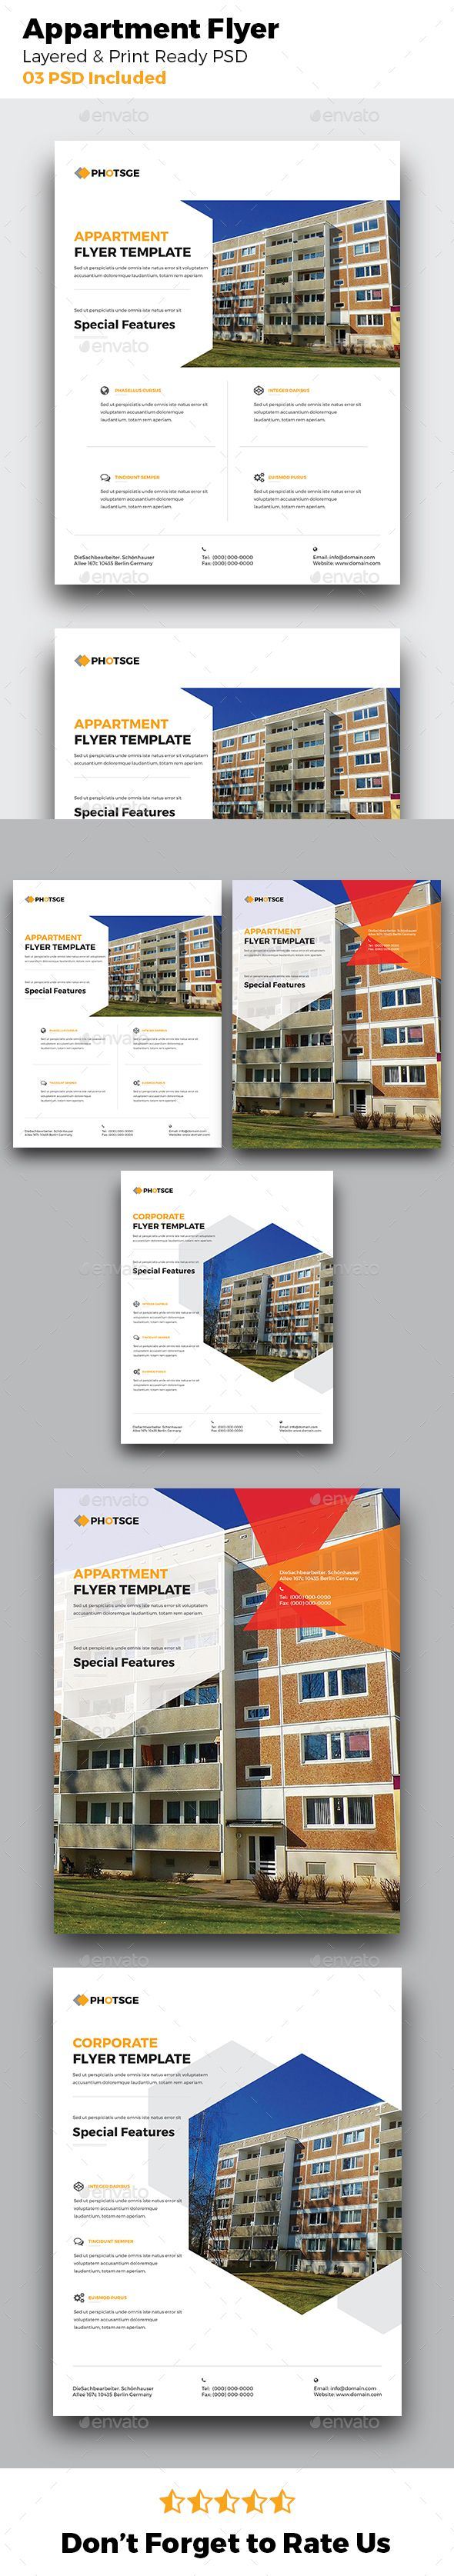 Apartment Rental  Real Estate Flyer Ad Agency Building